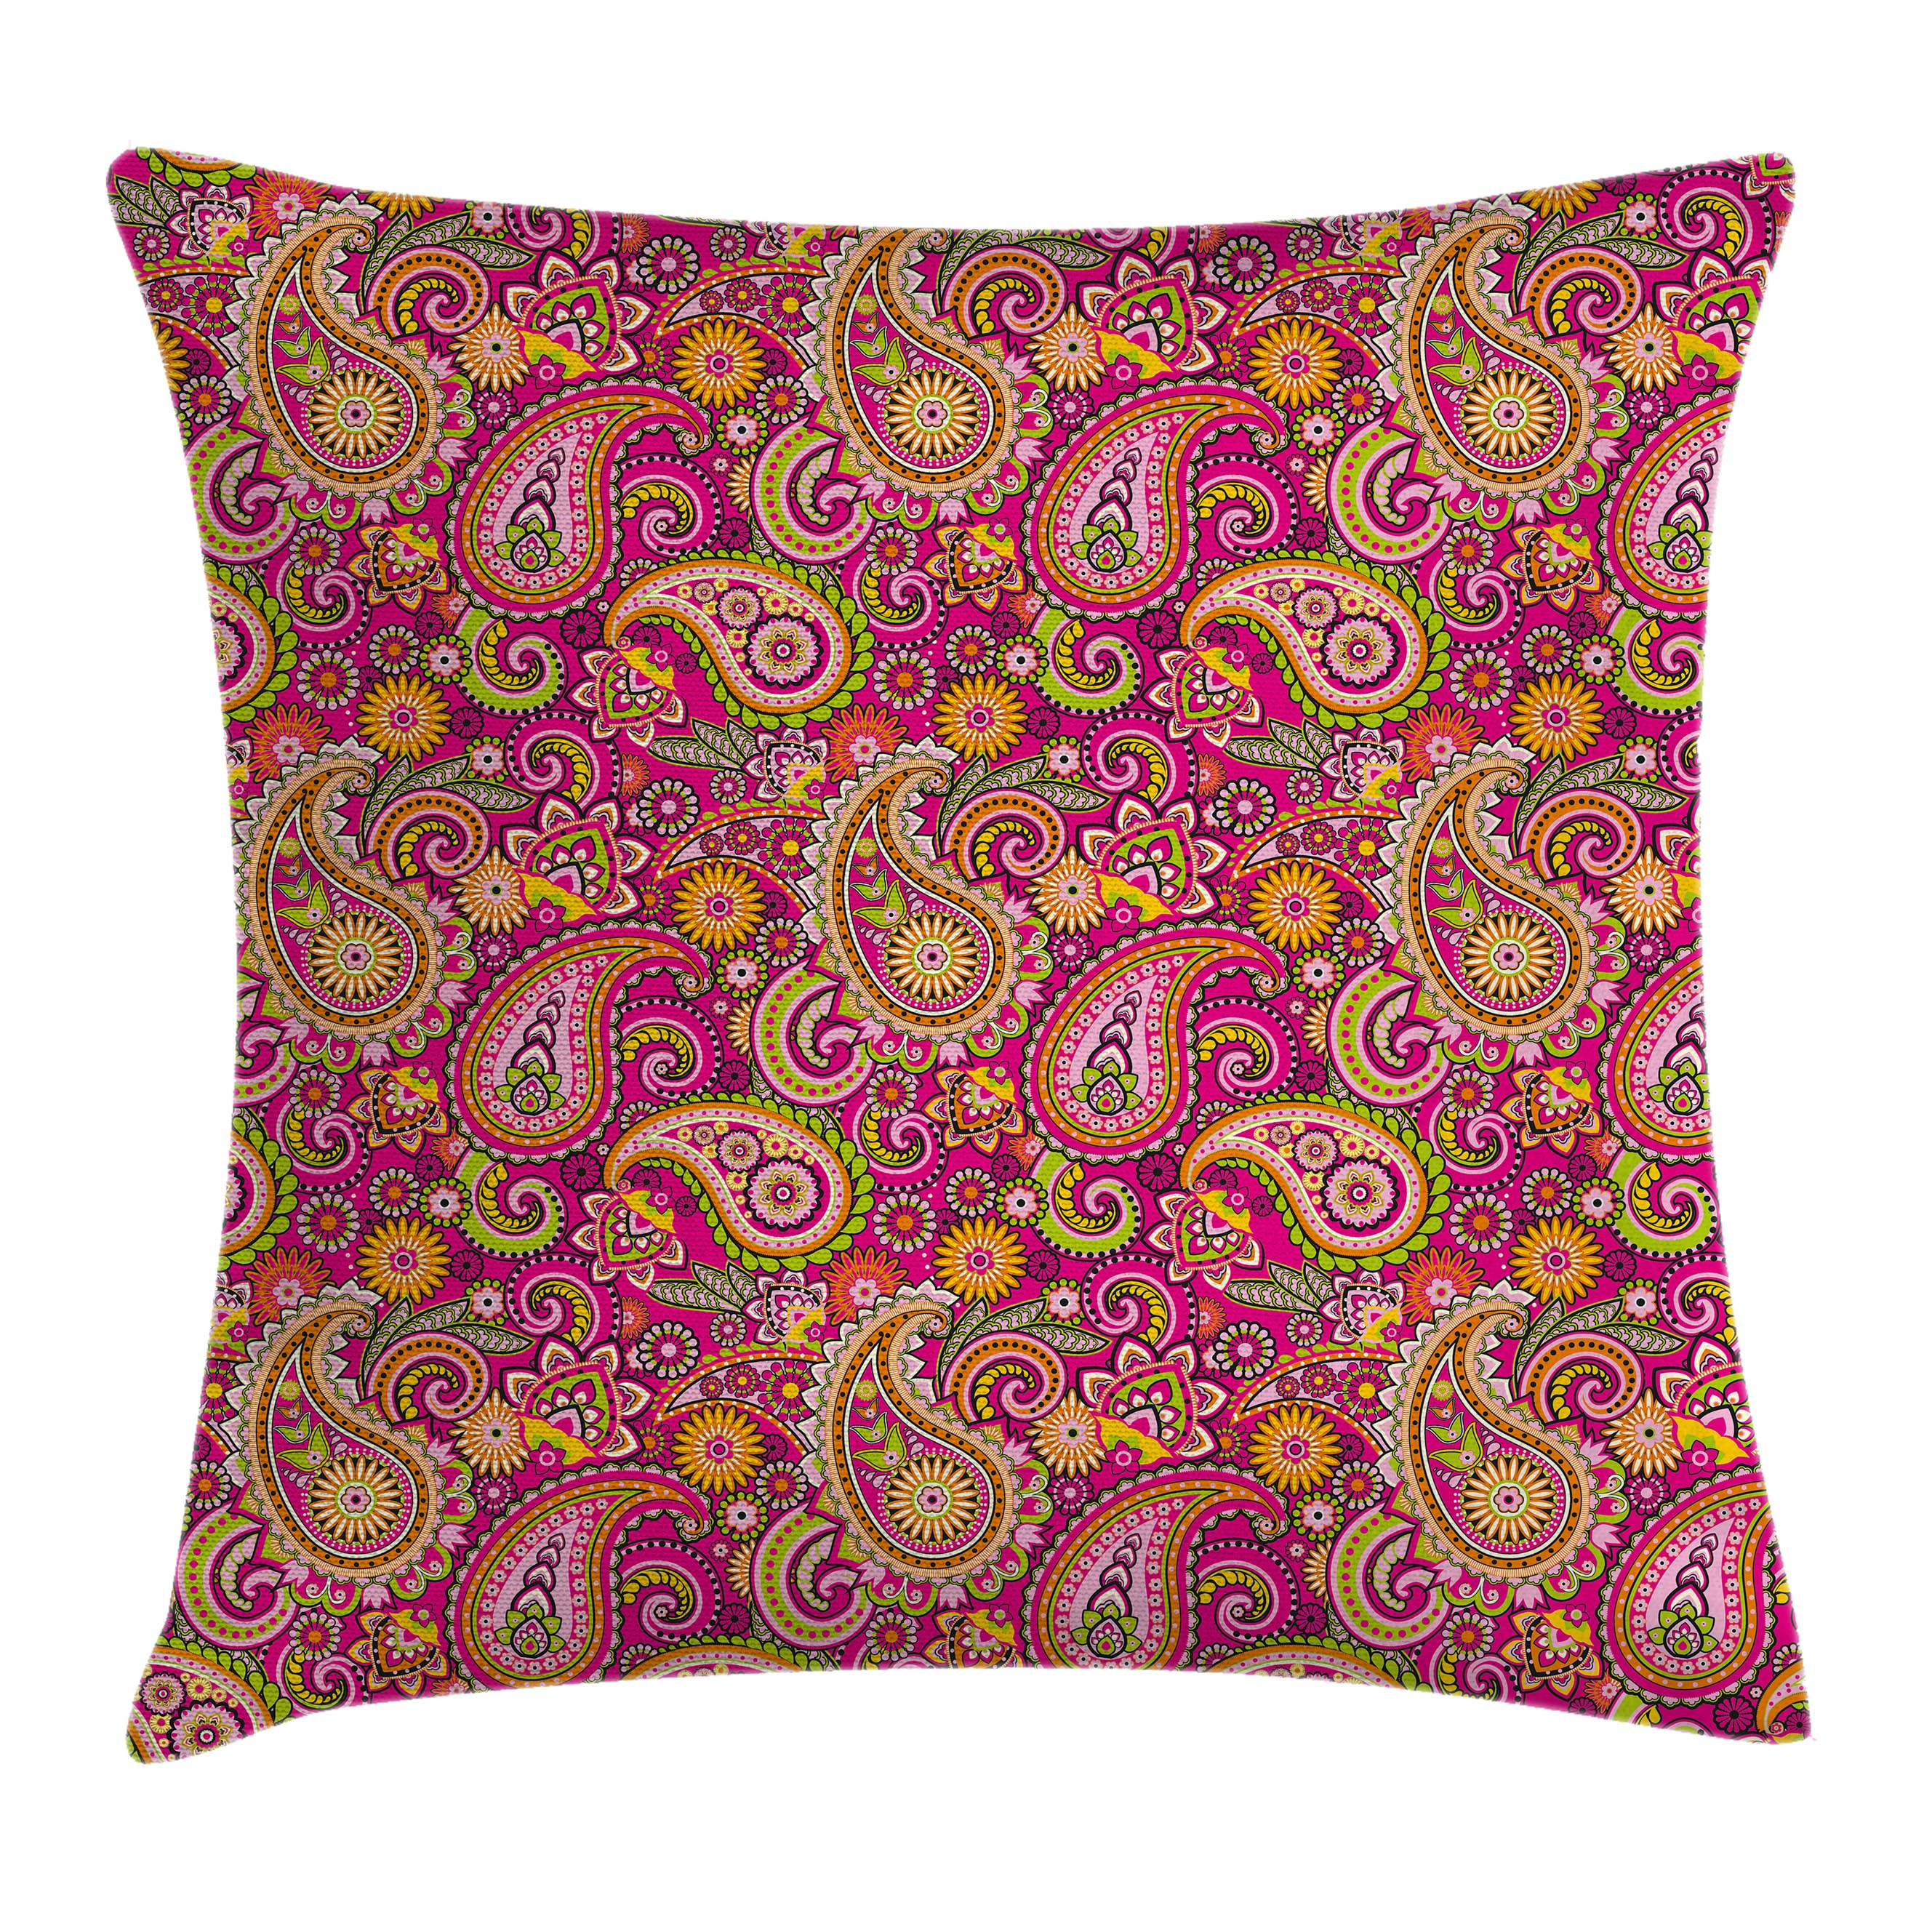 Paisley Decor Throw Pillow Cushion Cover, Vivid Design with Flowers Dots Leaves and Ornamental Patterns Artwork, Decorative Square Accent Pillow Case, 18 X 18 Inches, Multi Colored, by Ambesonne